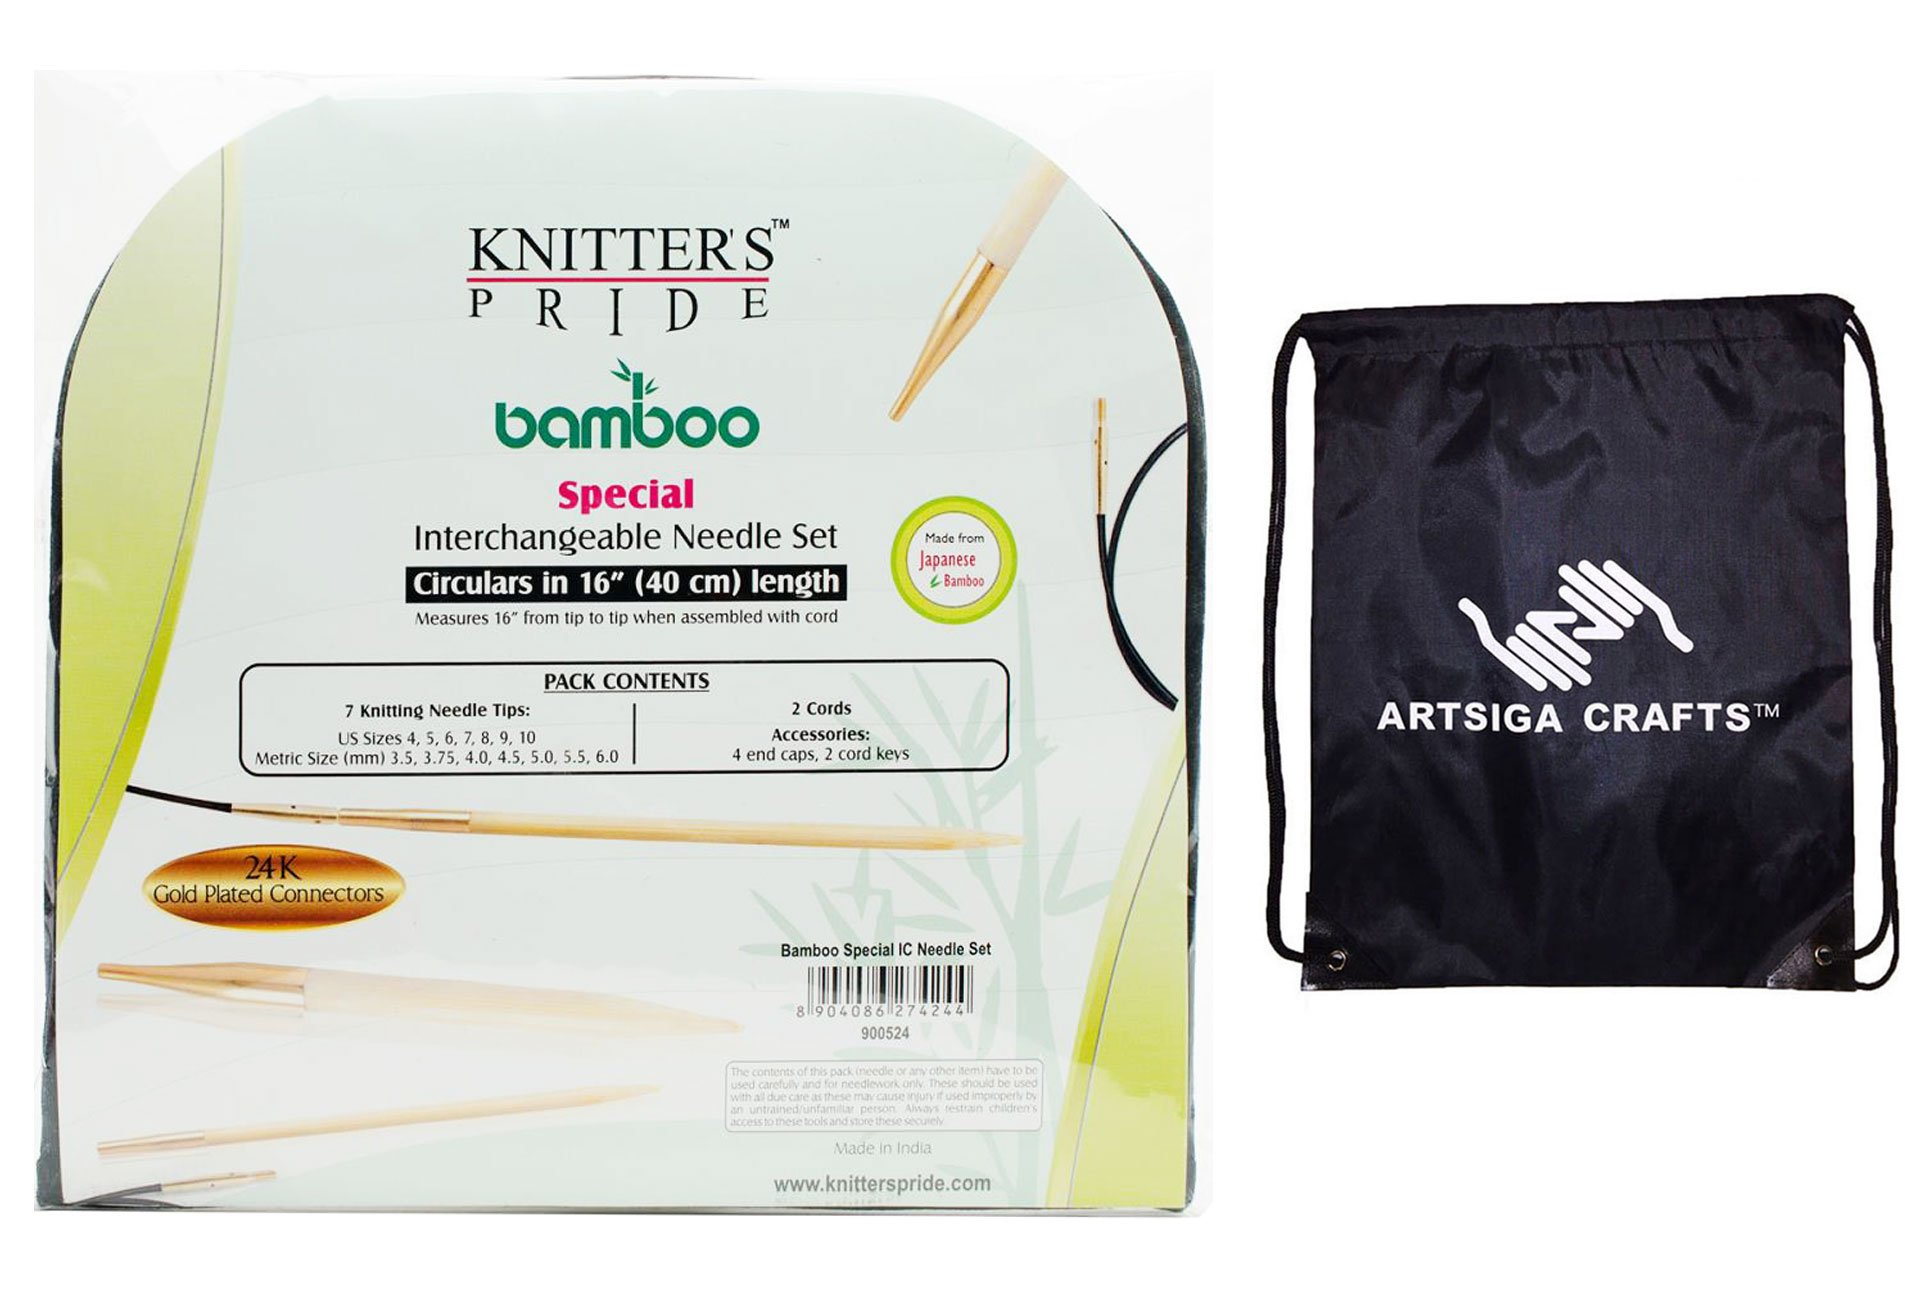 Knitter's Pride Bamboo Interchangeable Circular Knitting Needles Short Tip Set Bundle with 1 Artsiga Crafts Project Bag 900524